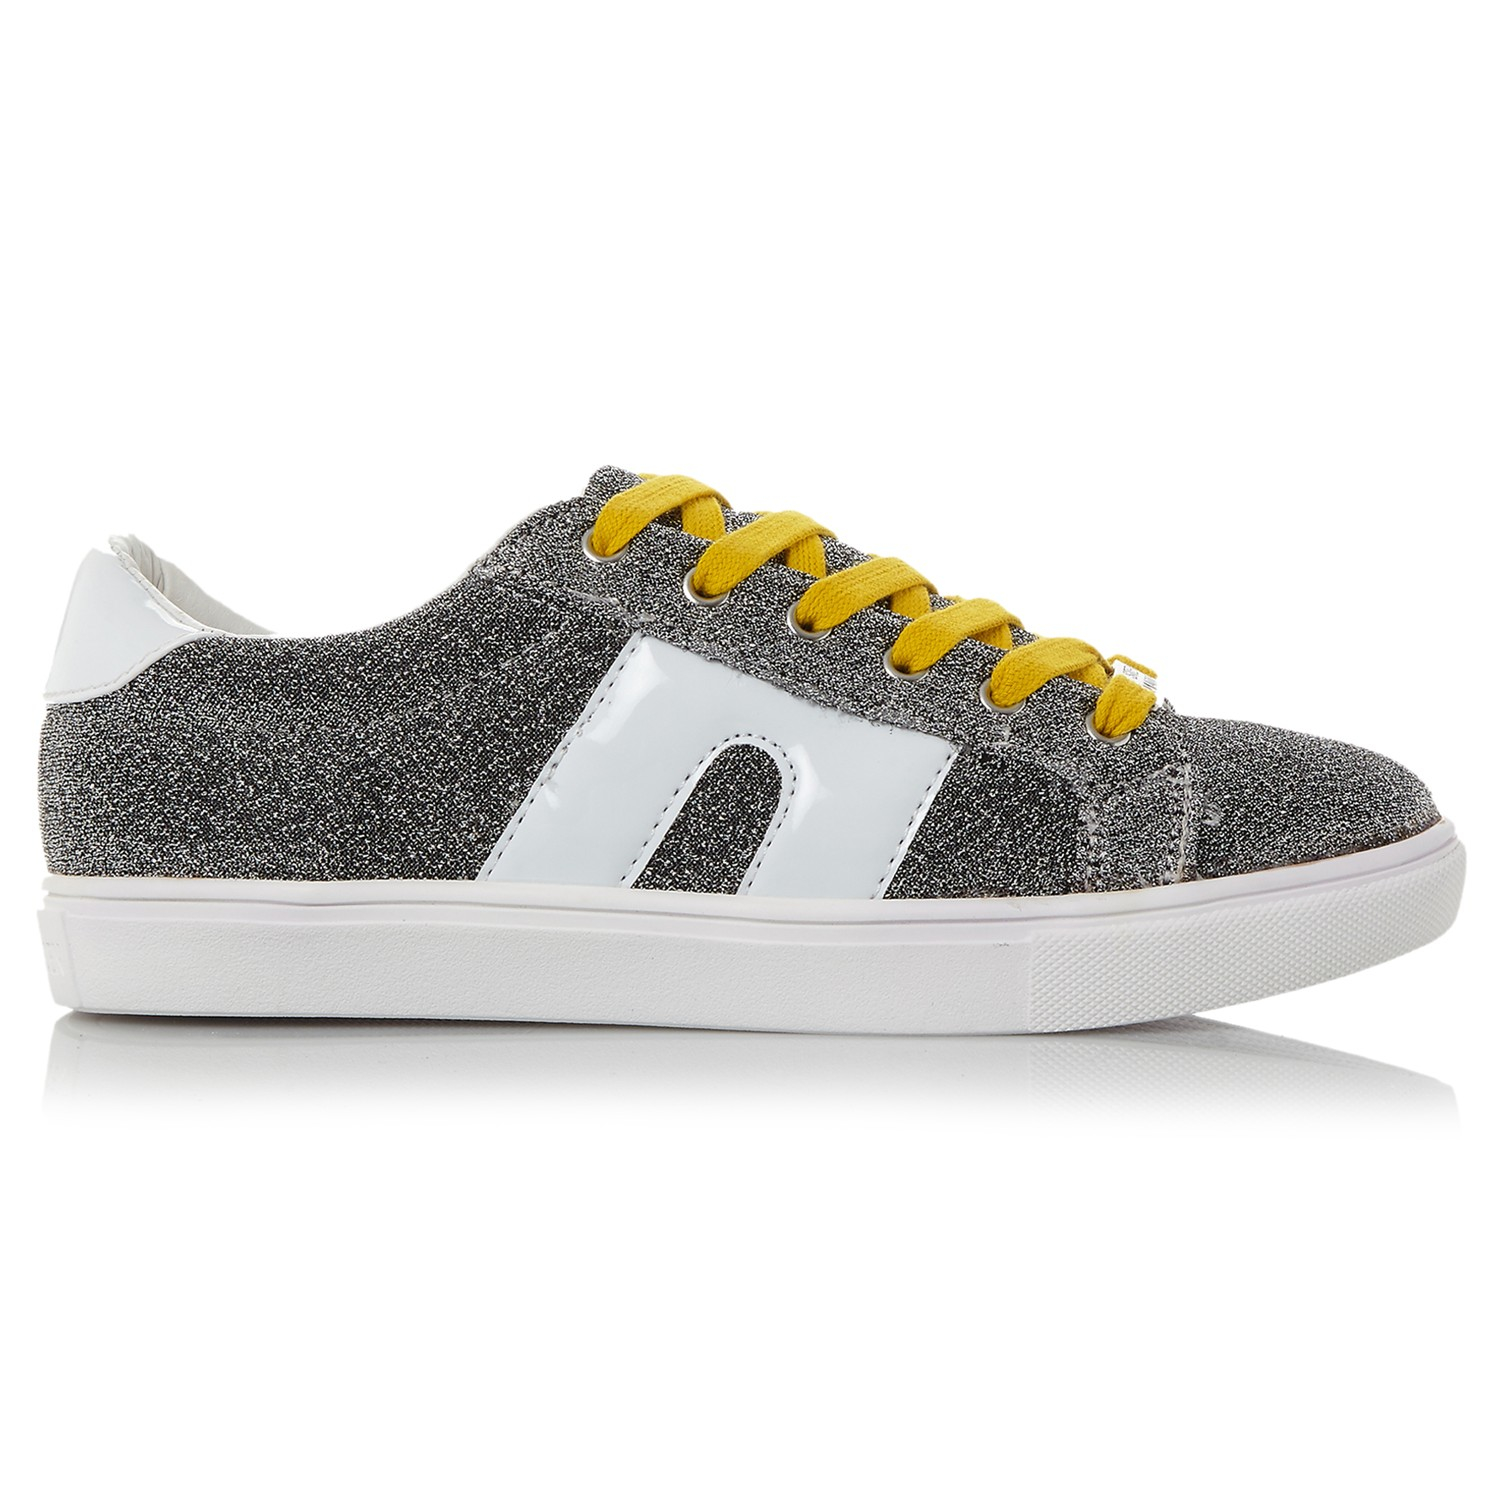 Steve Madden Lace Sm1 Low Top Trainers in Silver (Metallic)